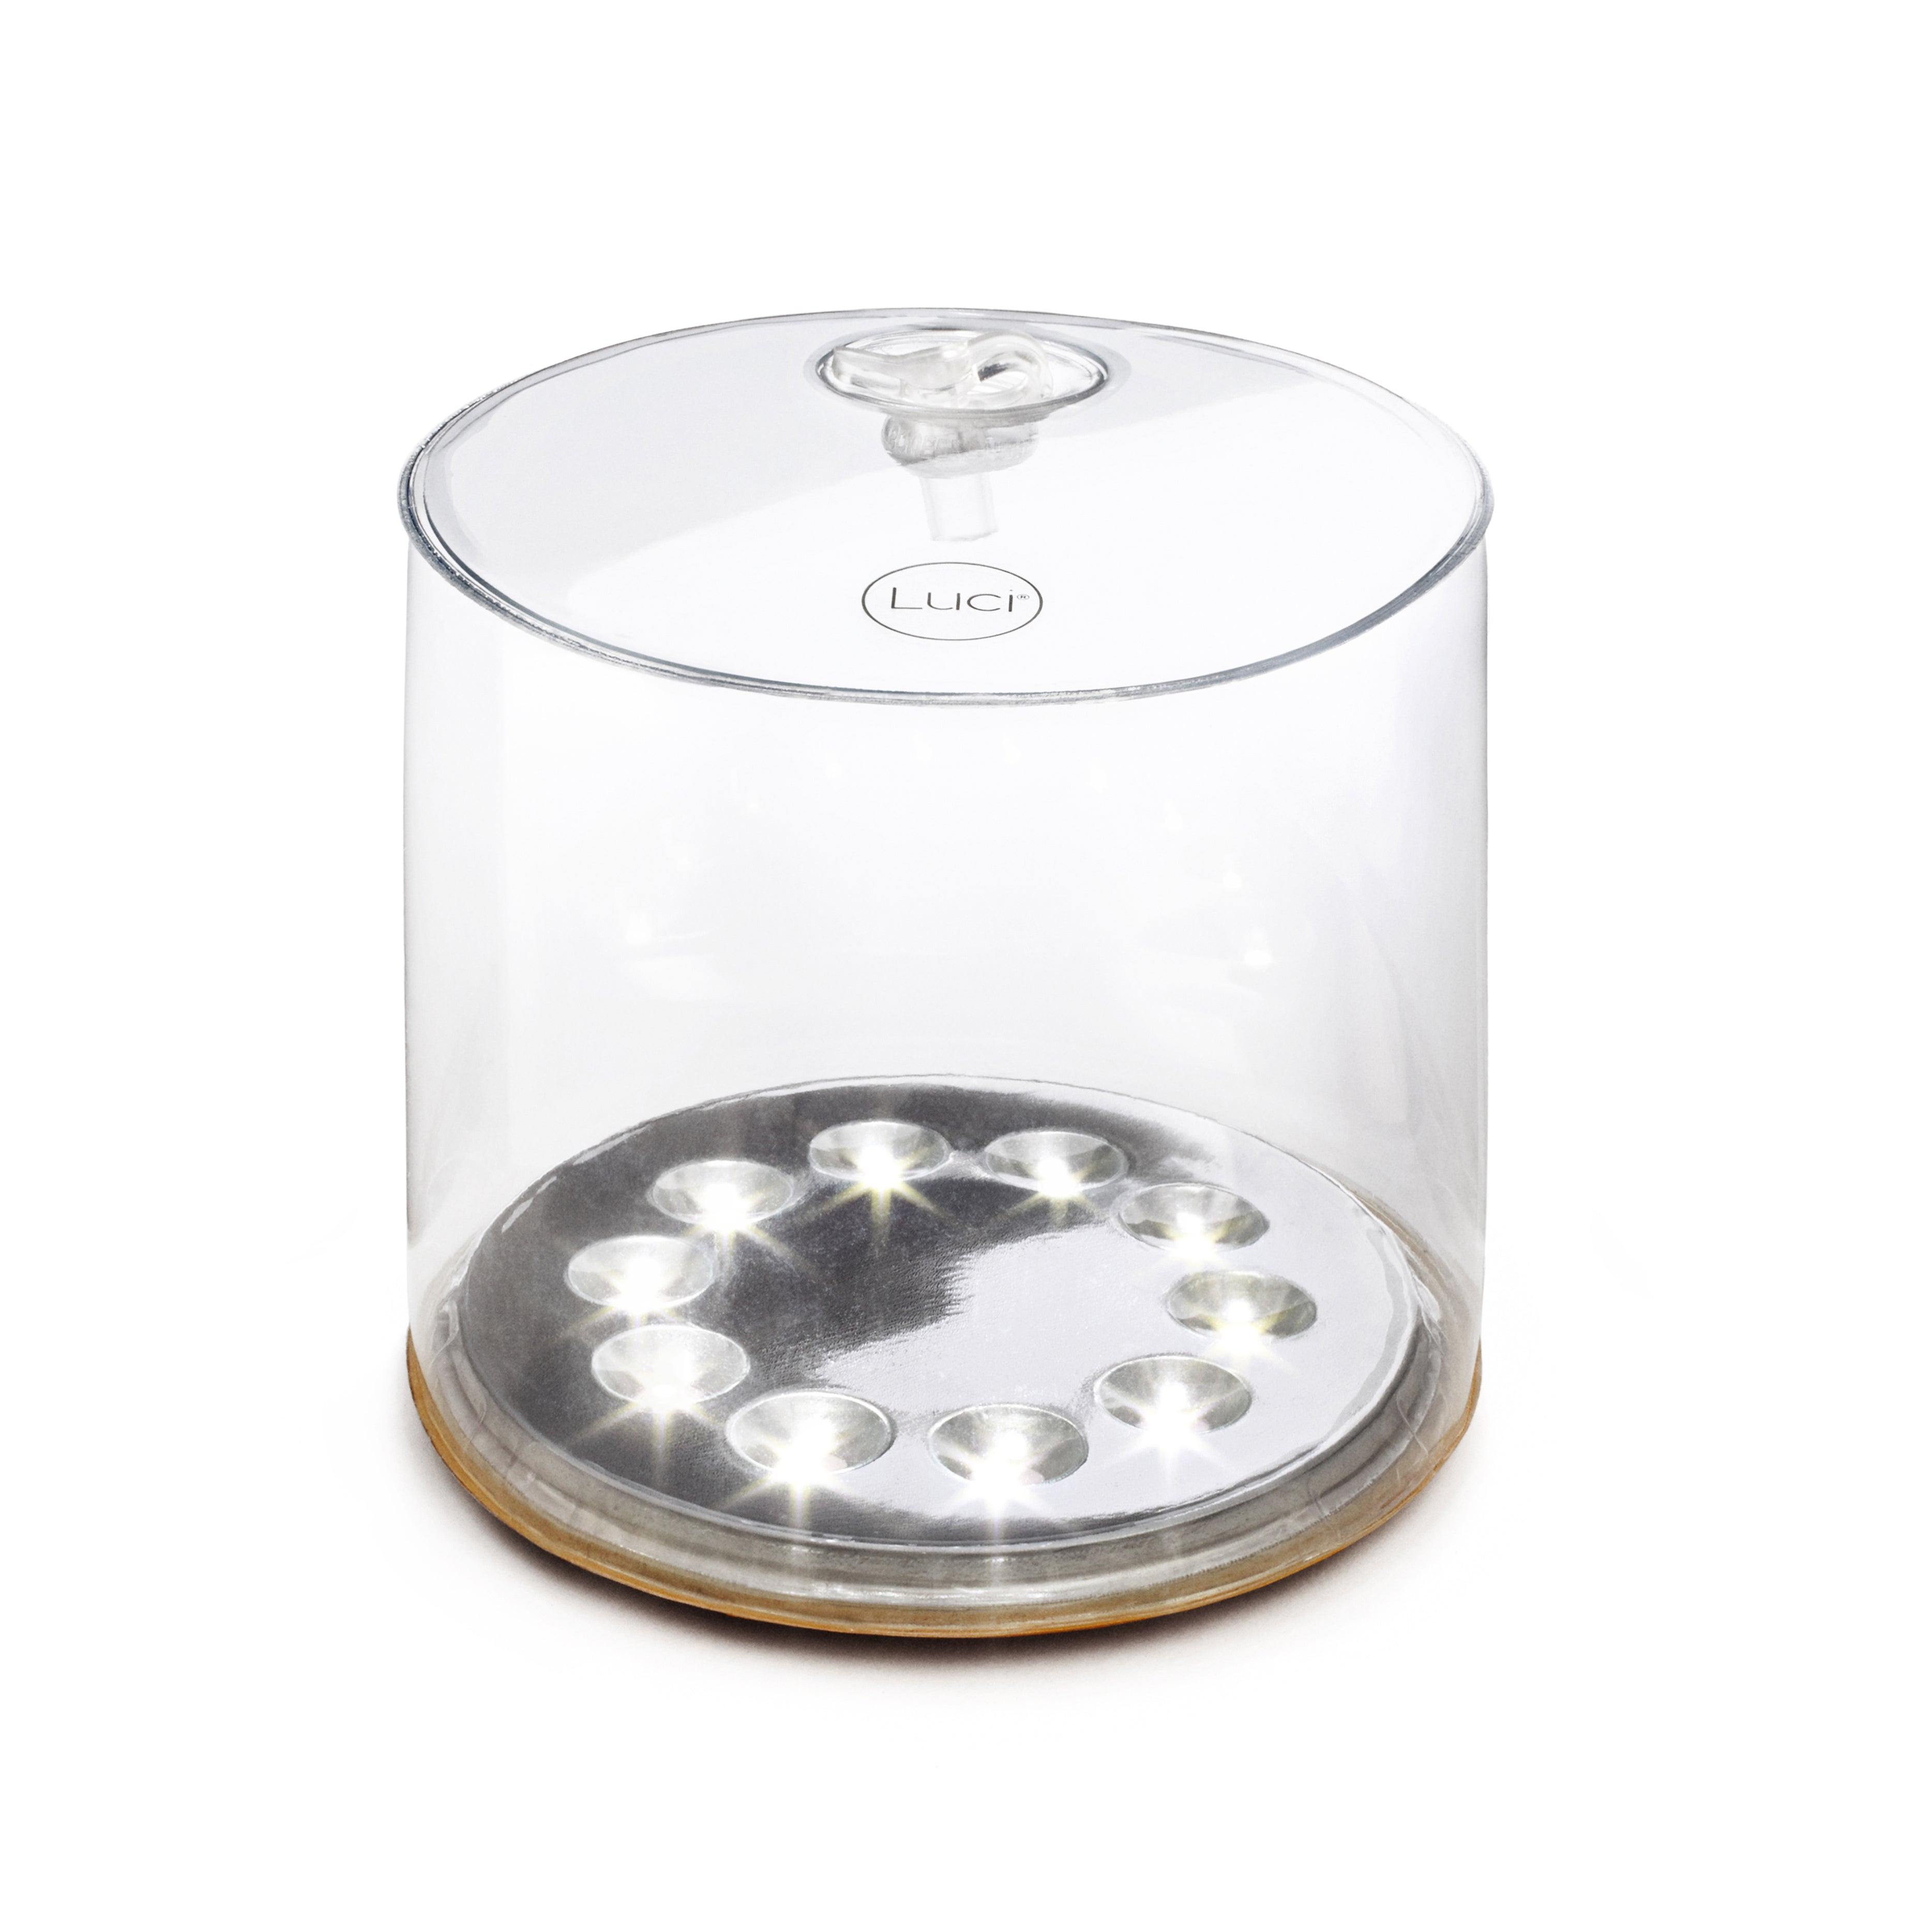 Luci Original Inflatable Solar Light - Lanterns Included By Mpowerd